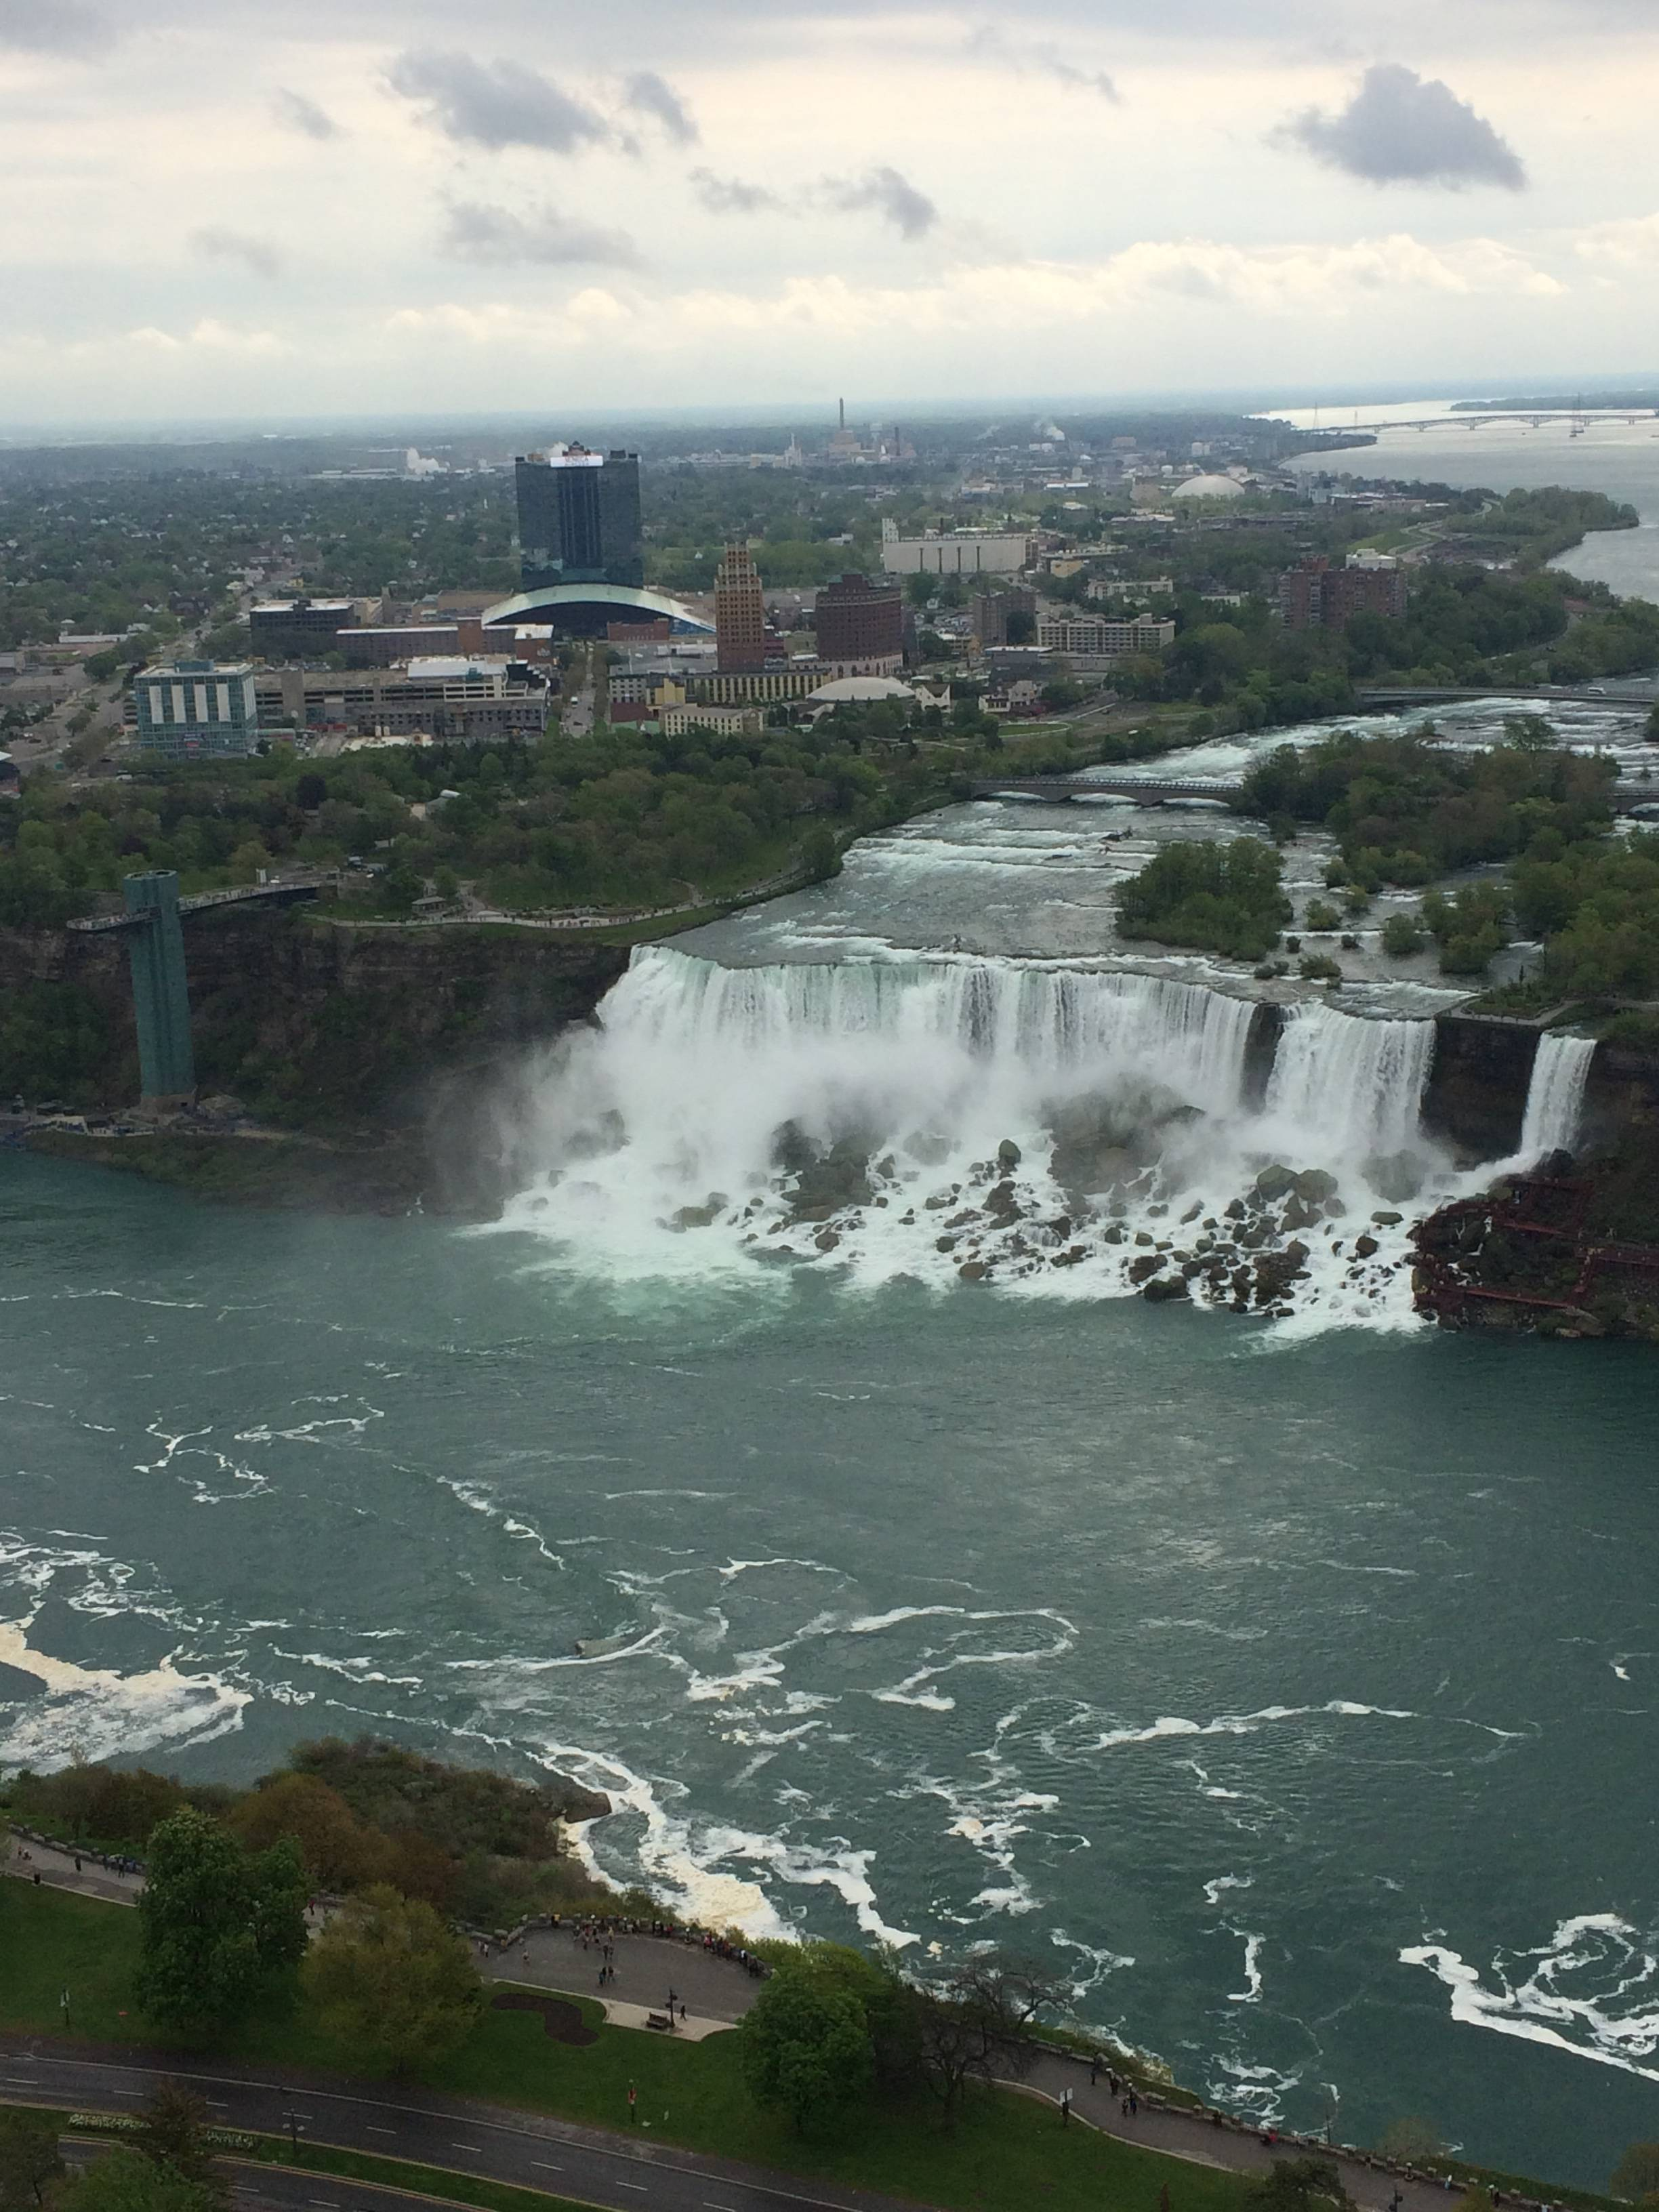 Photo 2: Tour Toronto - Niagara fall